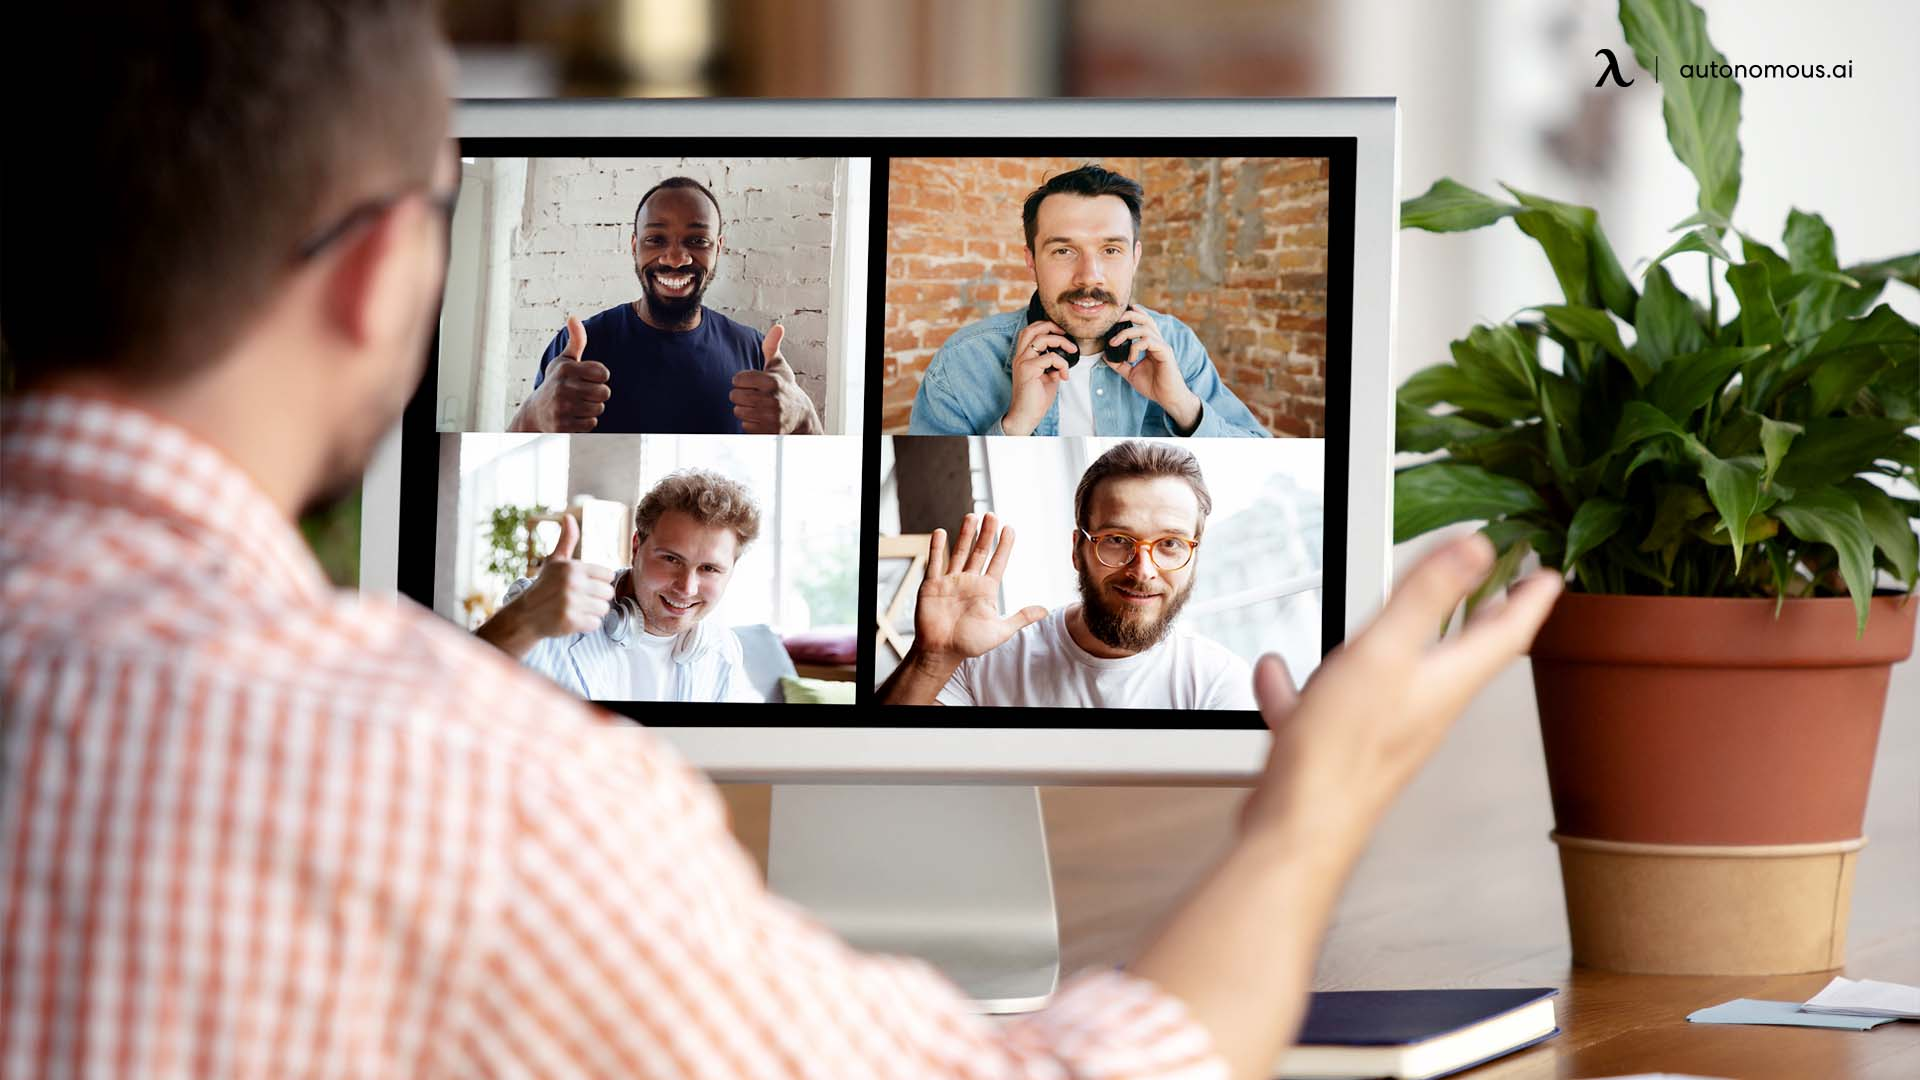 What Are the Benefits of Hosting Virtual Team Meetings?